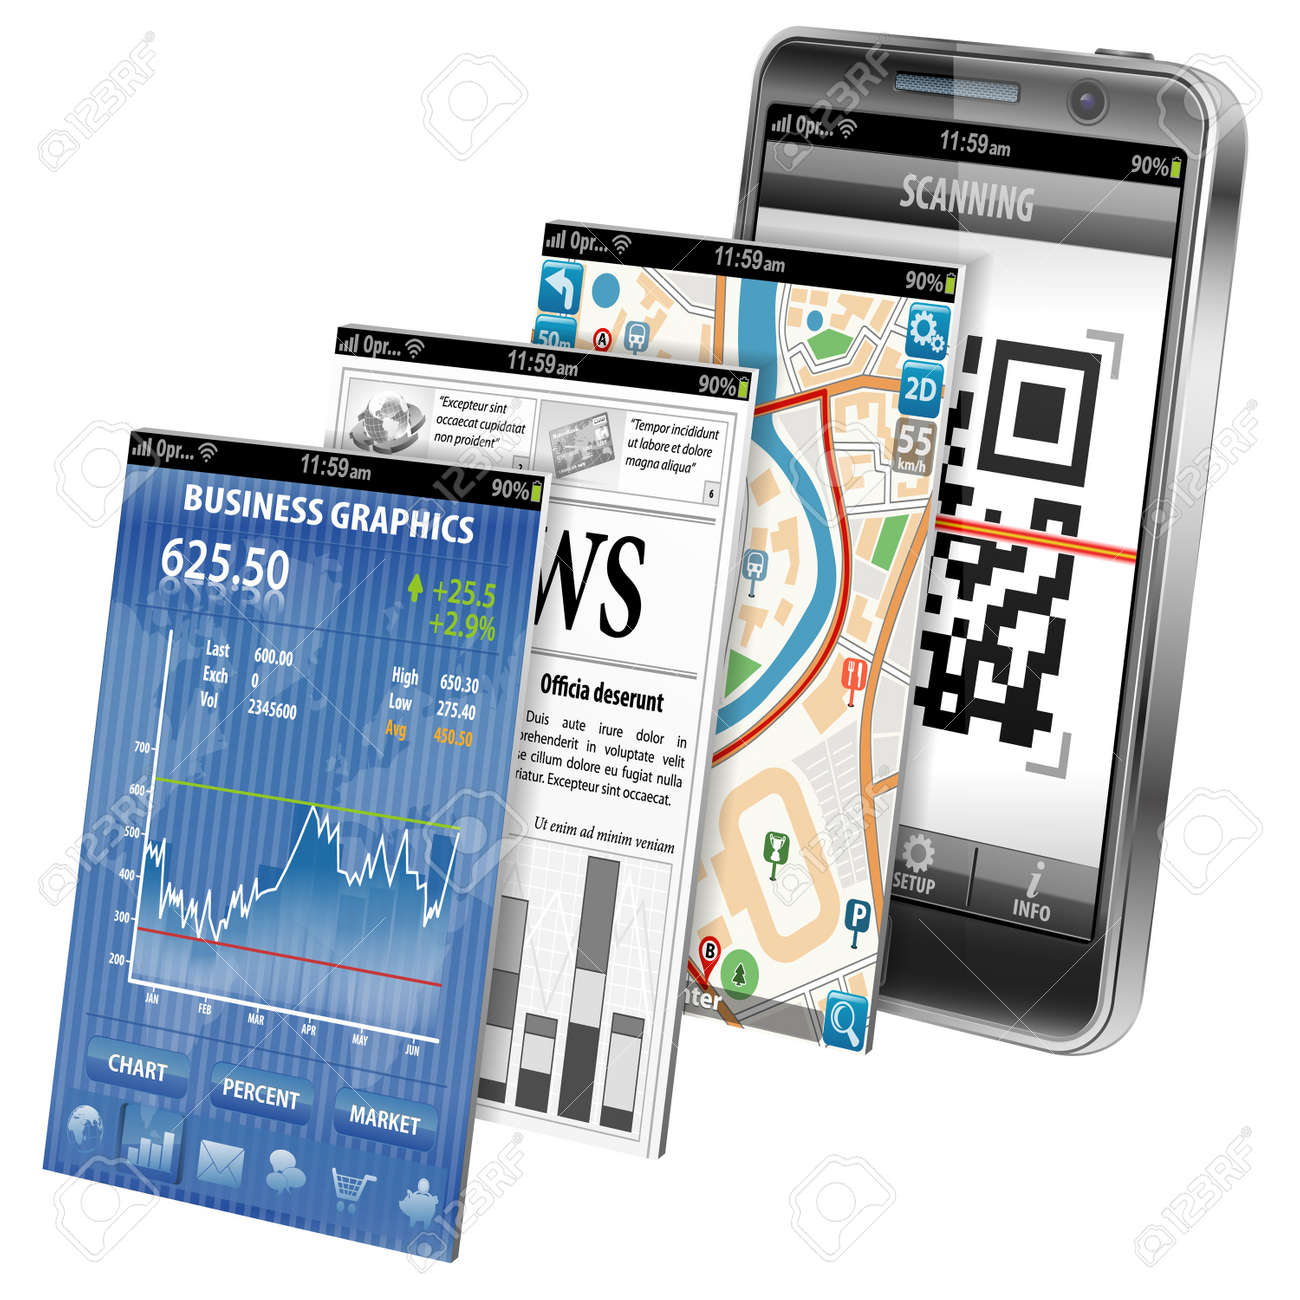 Collect Smartphone Applications - Stock Market, Business News, GPS Navigation and Scanning QR Code, icon isolated on white, vector Stock Vector - 16221631